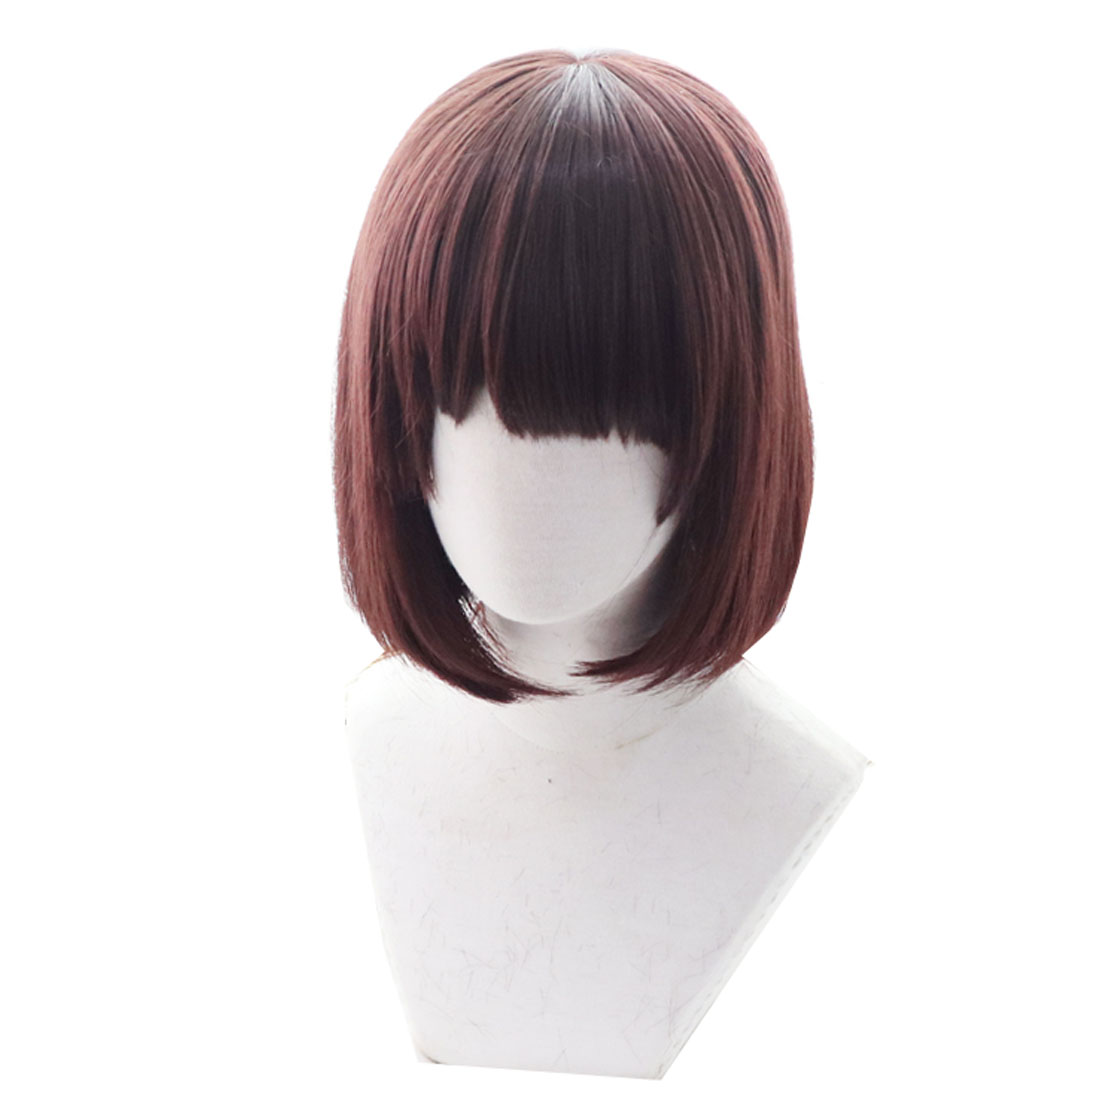 2019 Chara Frisk Wig Brown Heat Resistant Synthetic Hair Undertale Cosplay Wigs Necklace